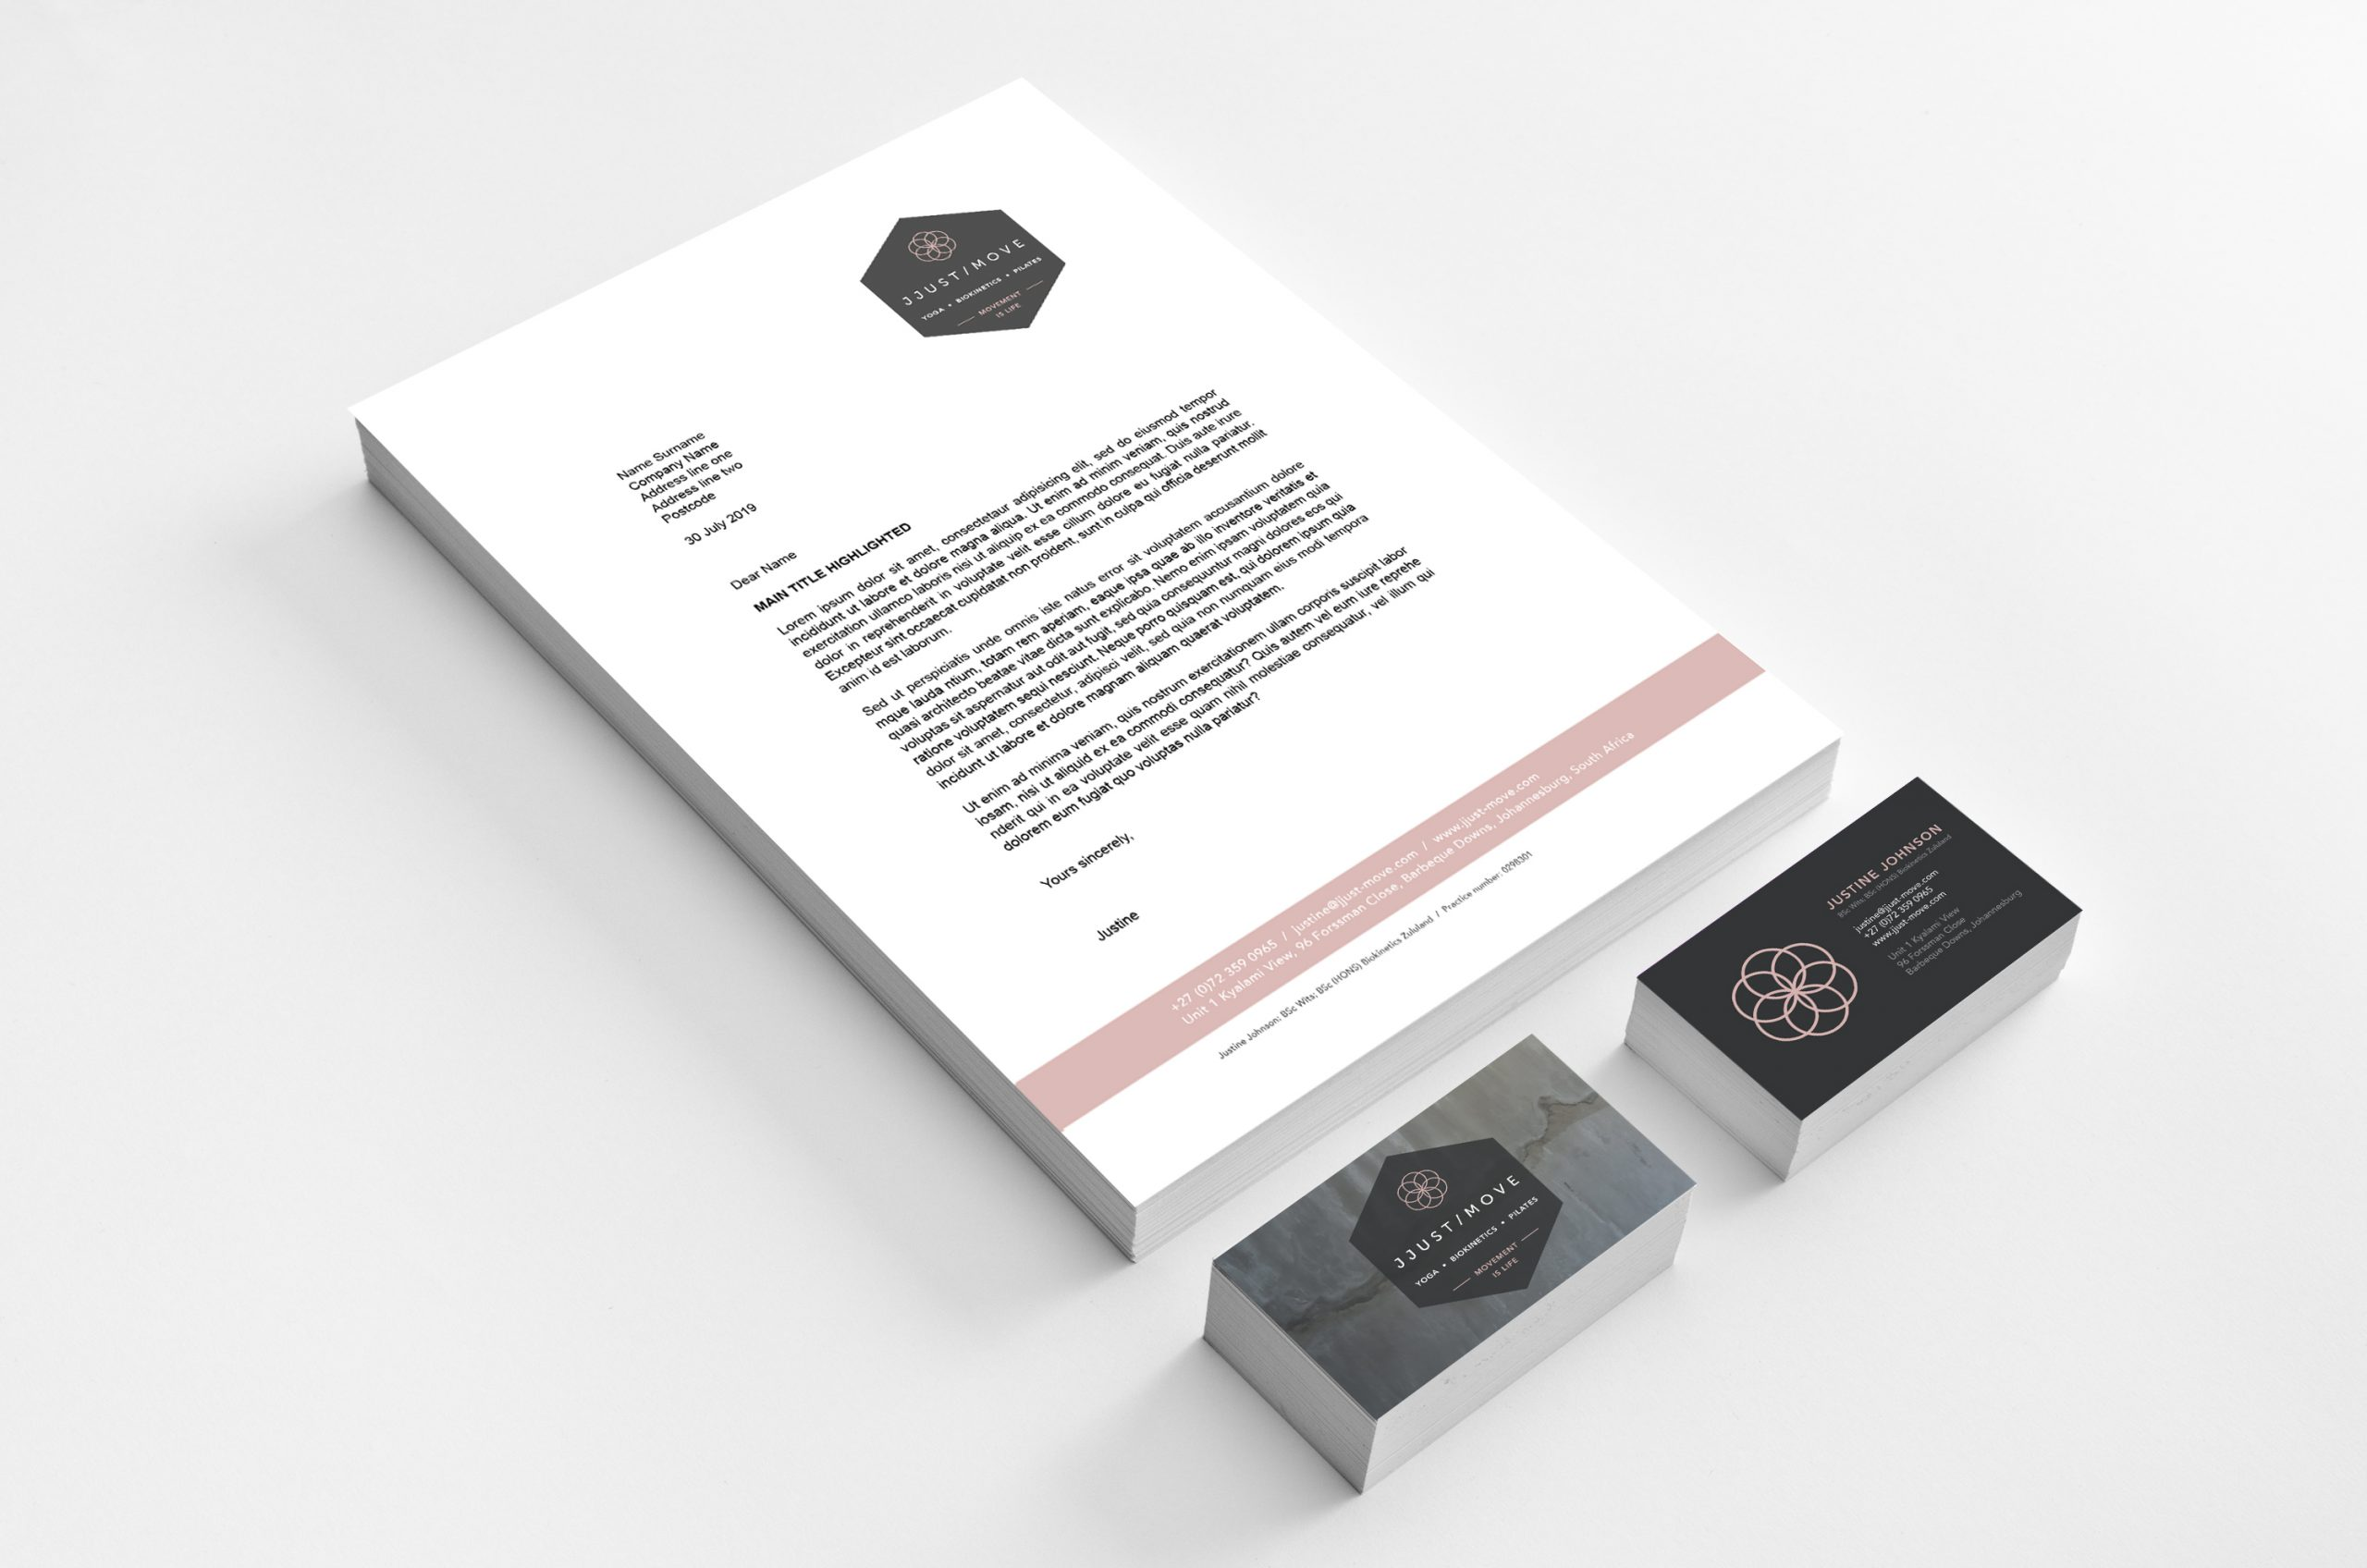 JJust Move letterhead and business cards, designed by MR.SMiTH